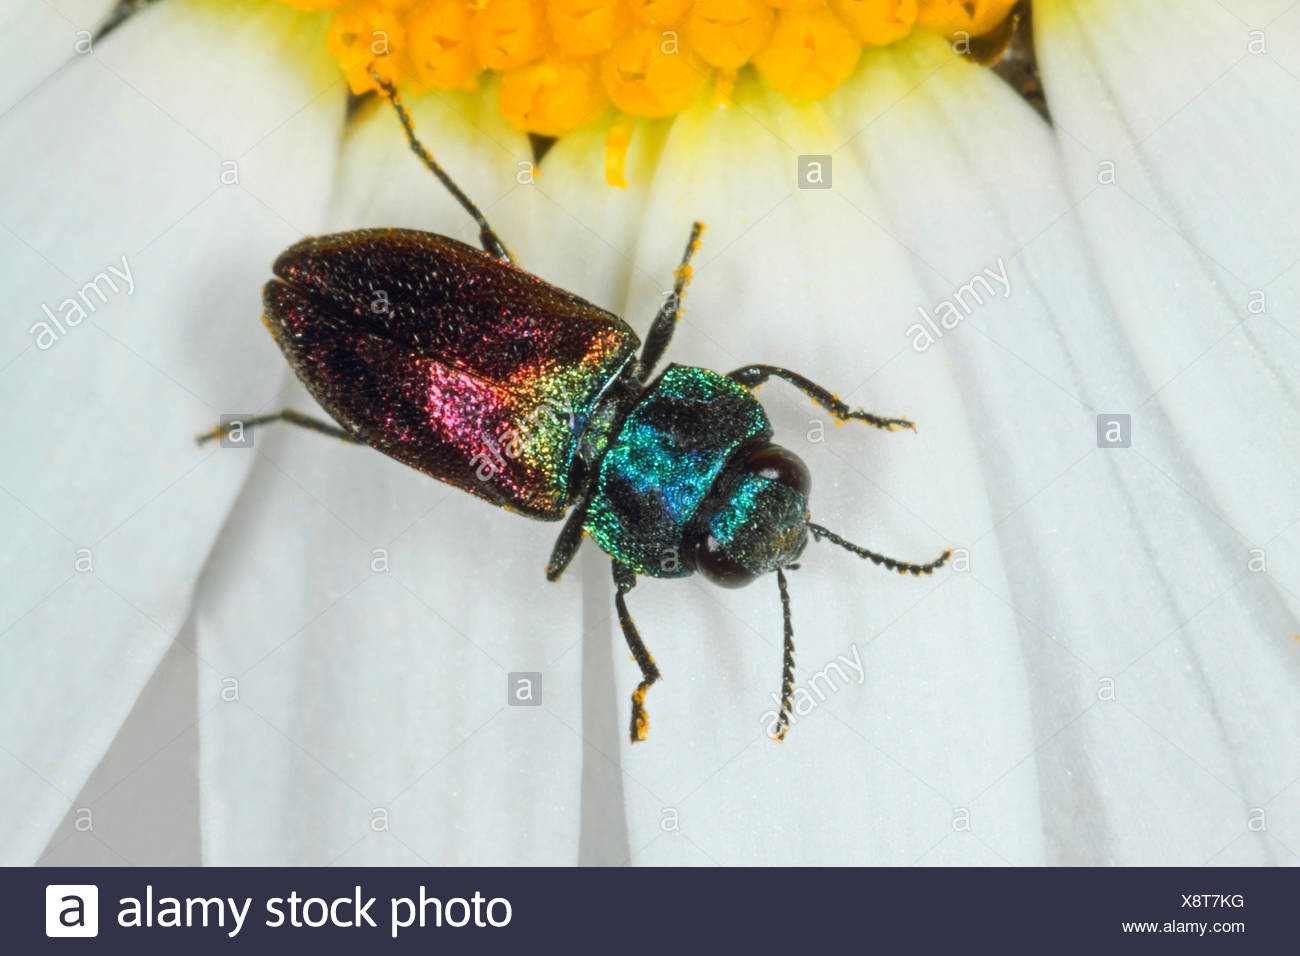 buprestids (Anthaxia suzannae), on an oxe-eye daisy, Germany - Stock Image